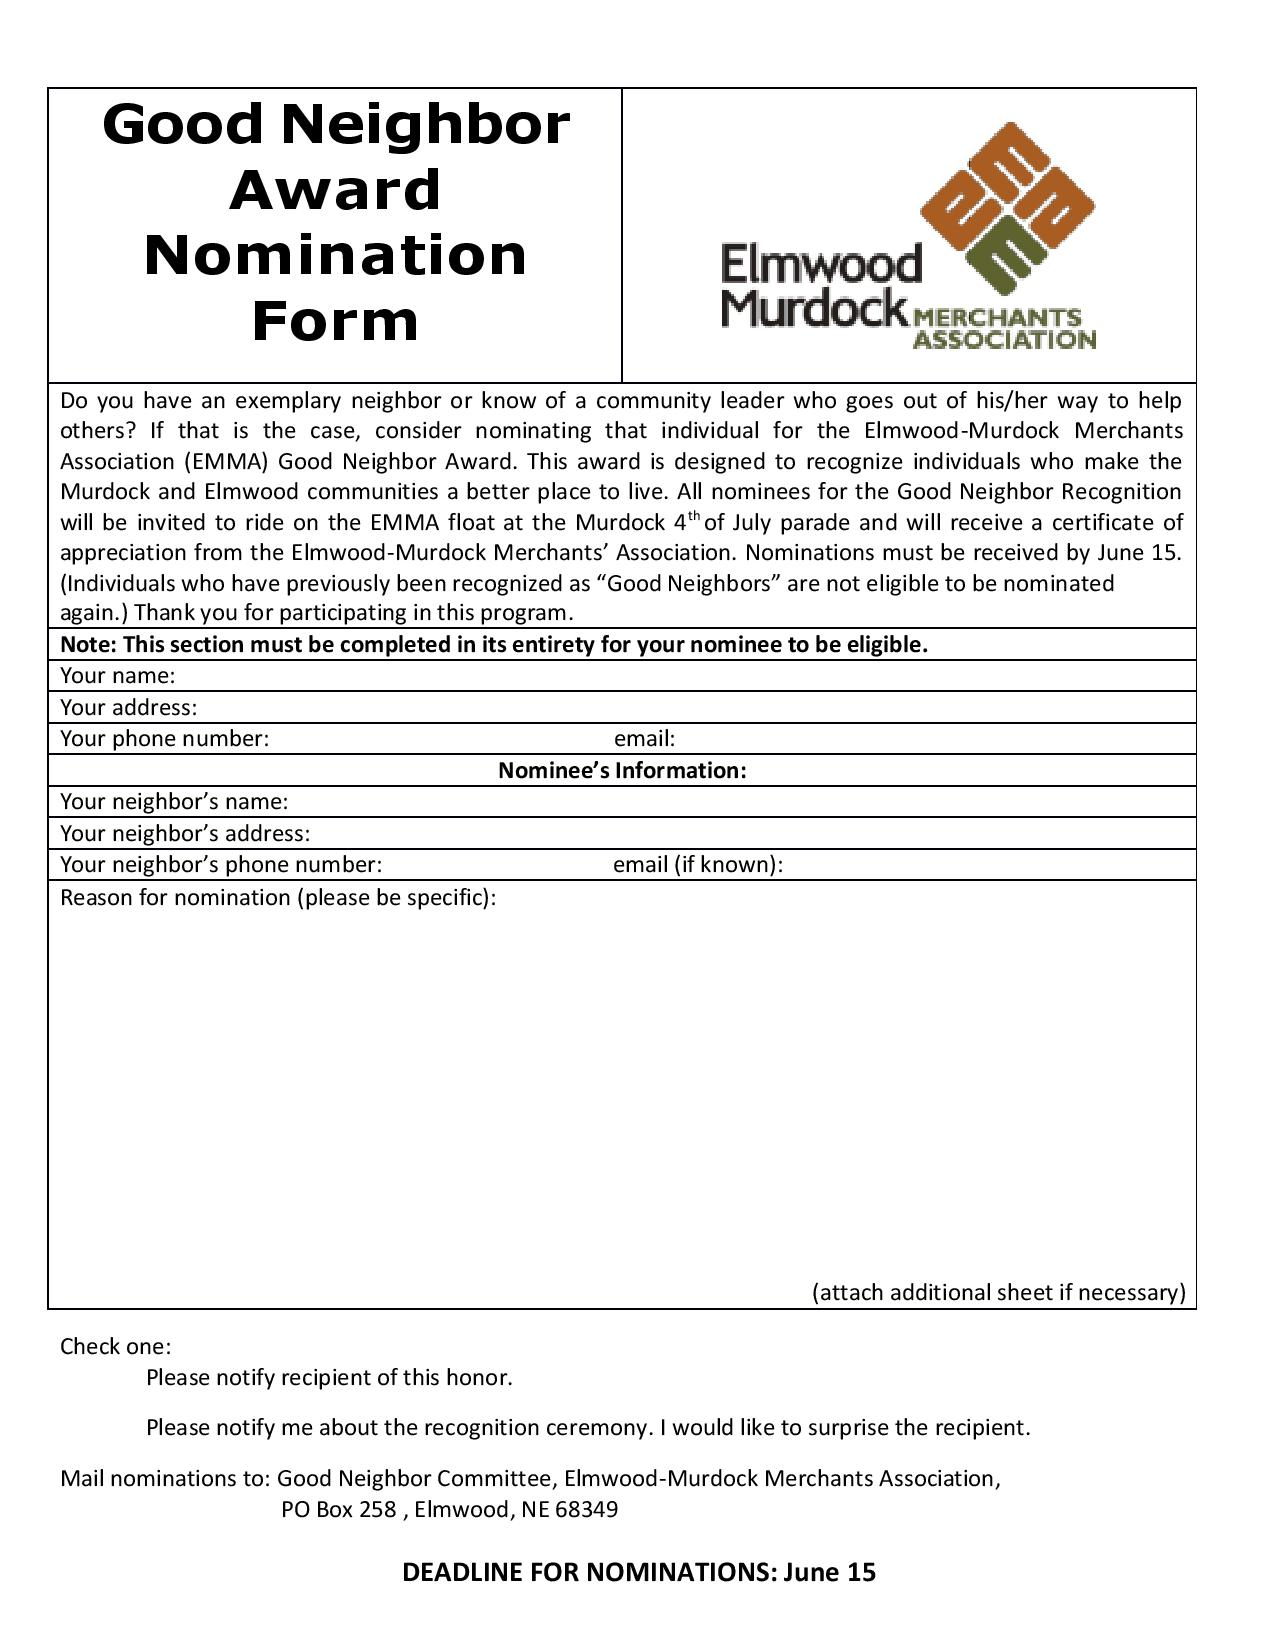 Good Neighbor Award Nomination Form 2019 page 001